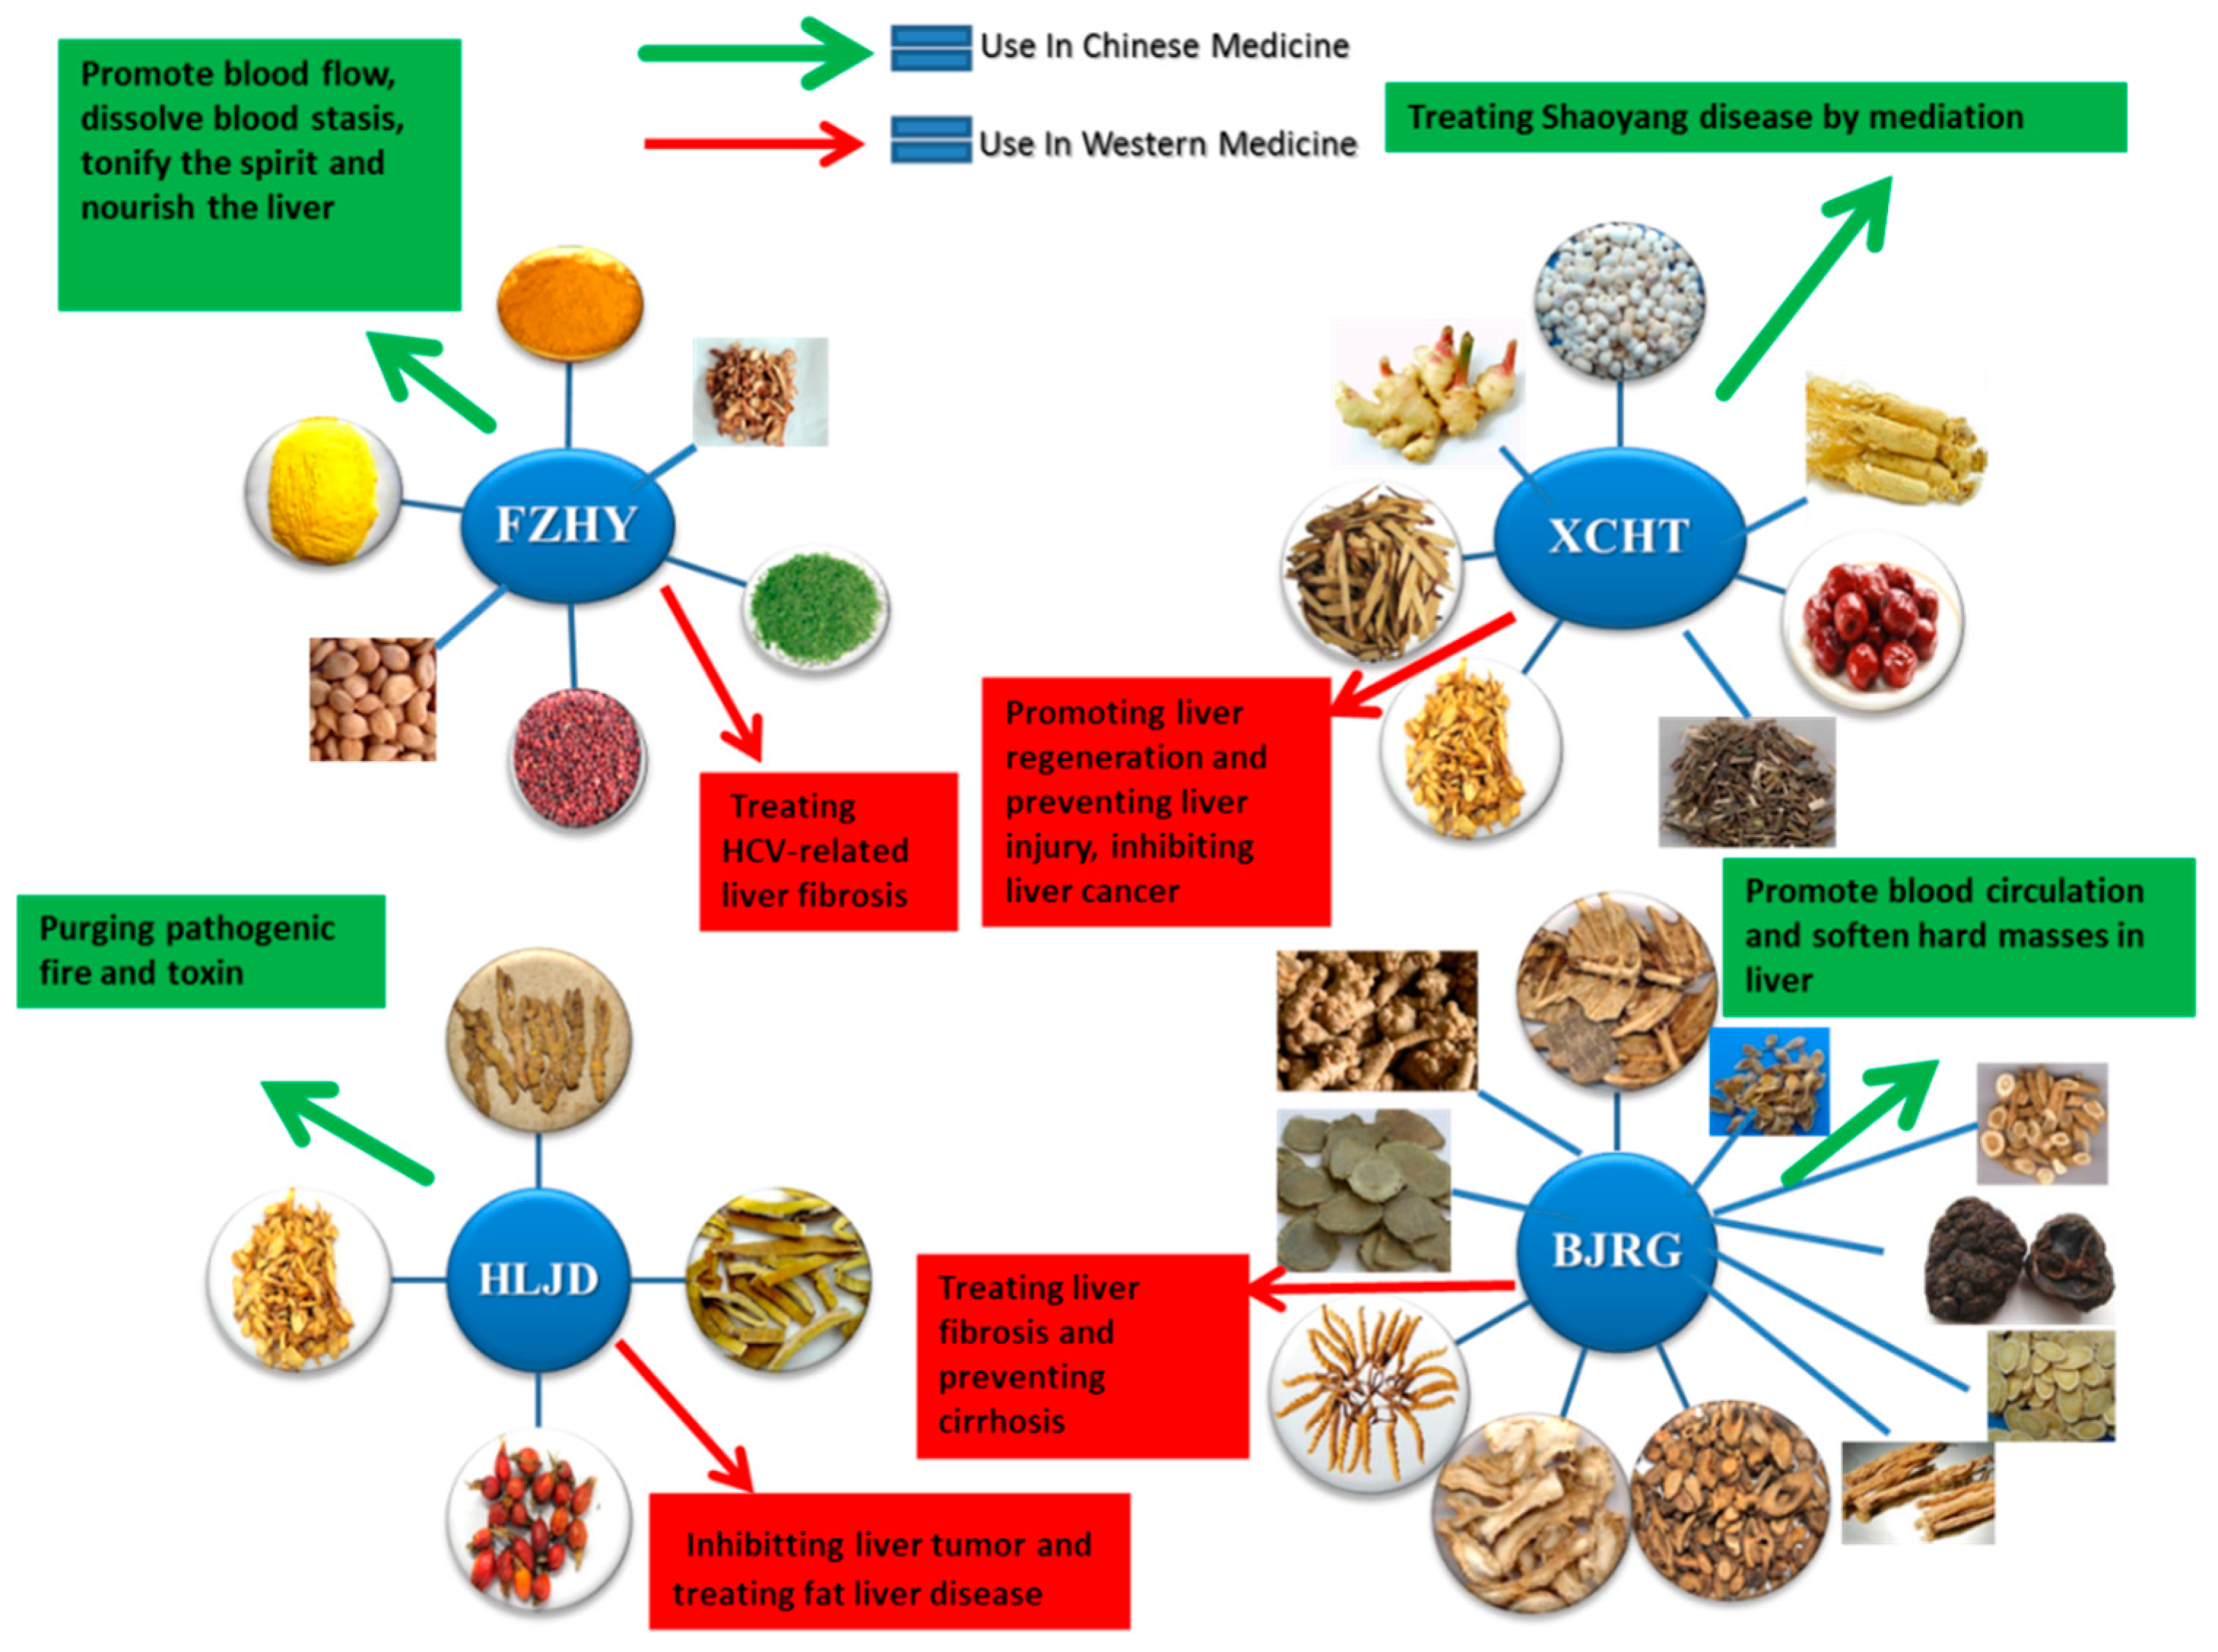 Cancer herbal liver treatment - Ijms Free Full Text Current Status Of Herbal Medicines In Chronic Liver Disease Therapy The Biological Effects Molecular Targets And Future Prospects